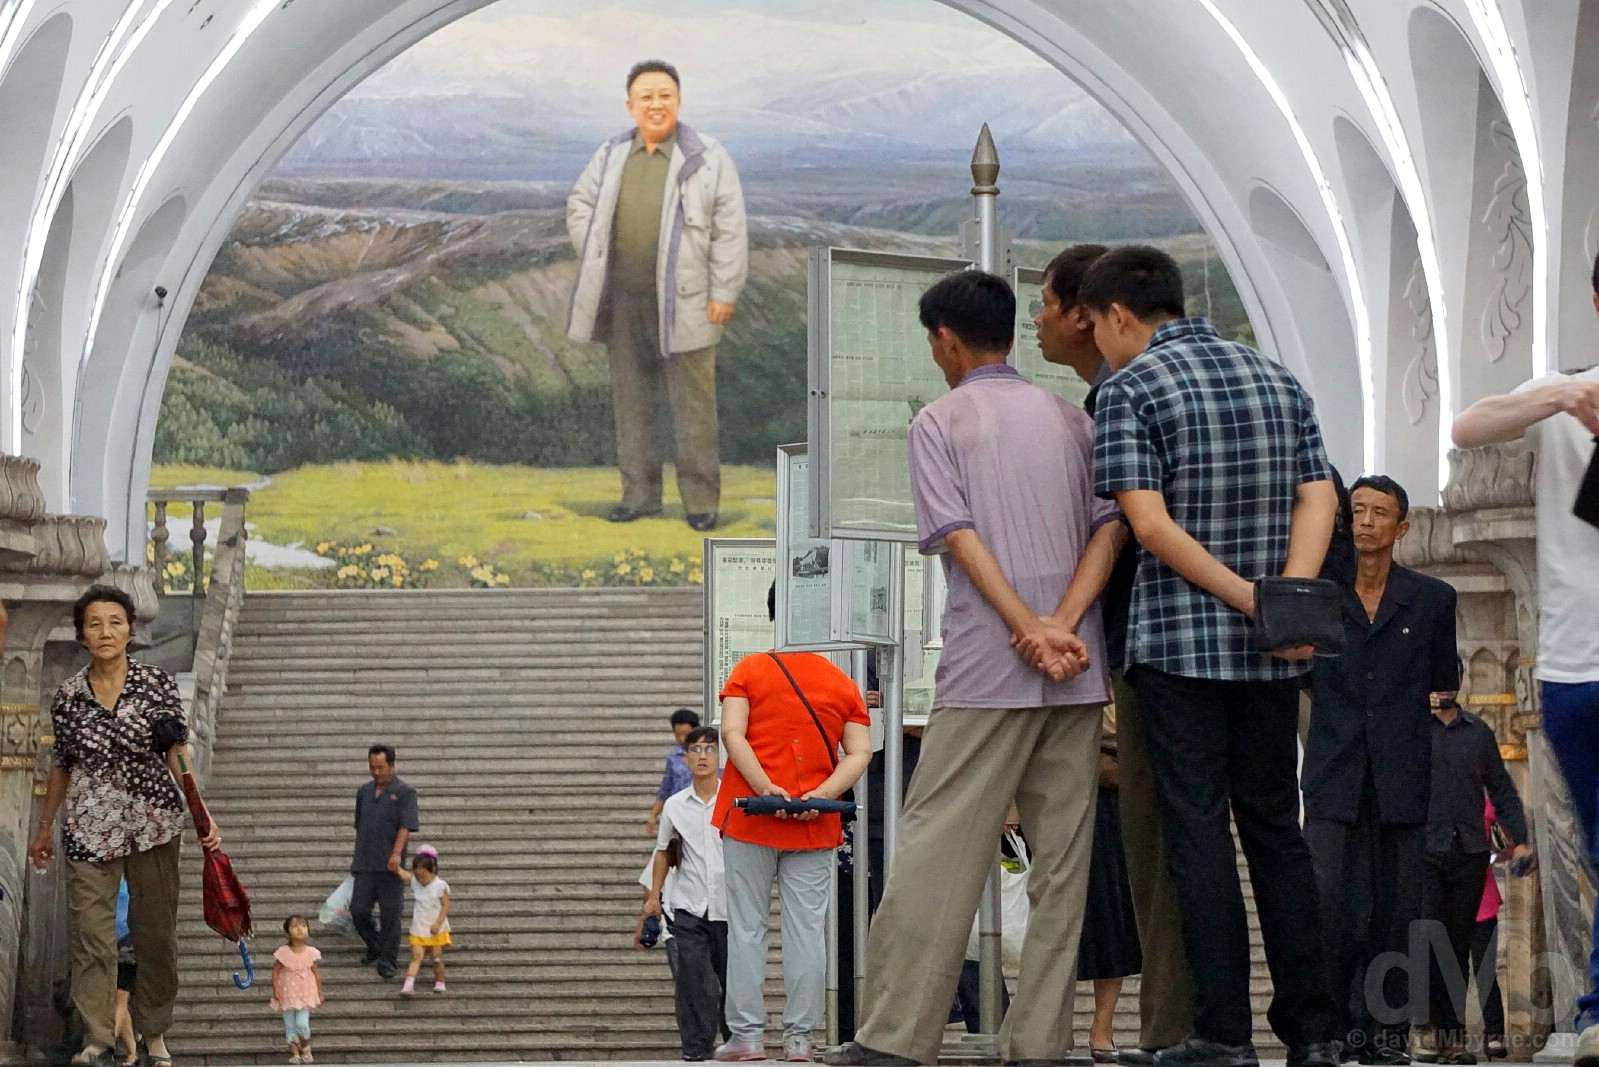 Getting the news on the platform of the Pyongyang Metro, the world's deepest. Pyongyang, North Korea. August 15, 2017.